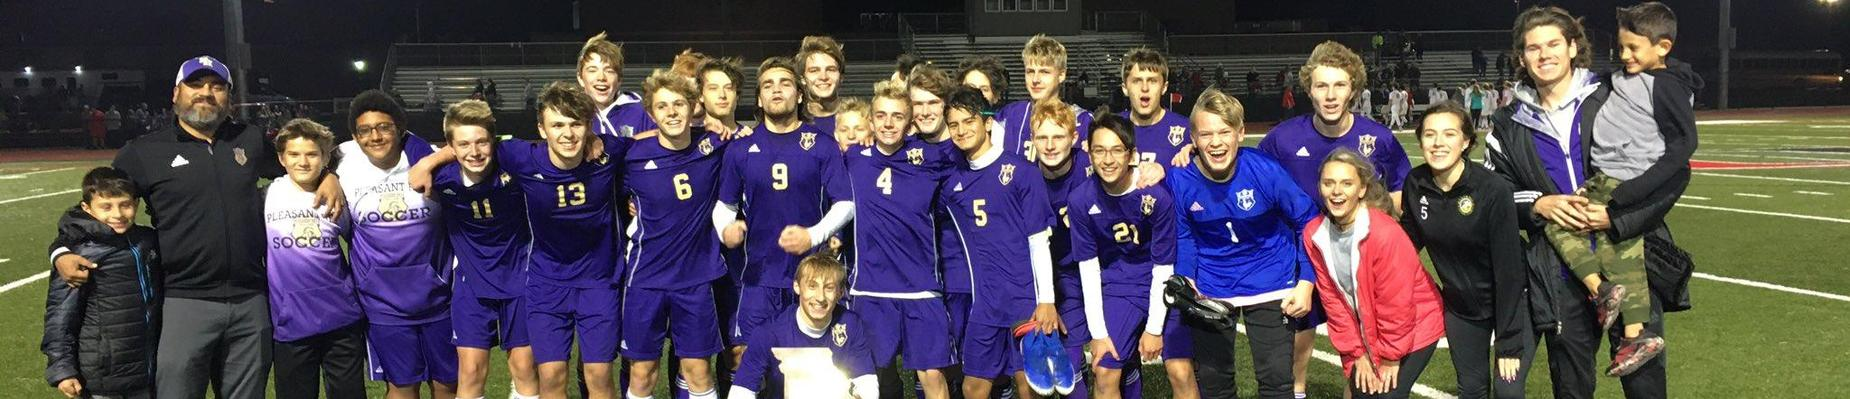 Boys Soccer - Districts